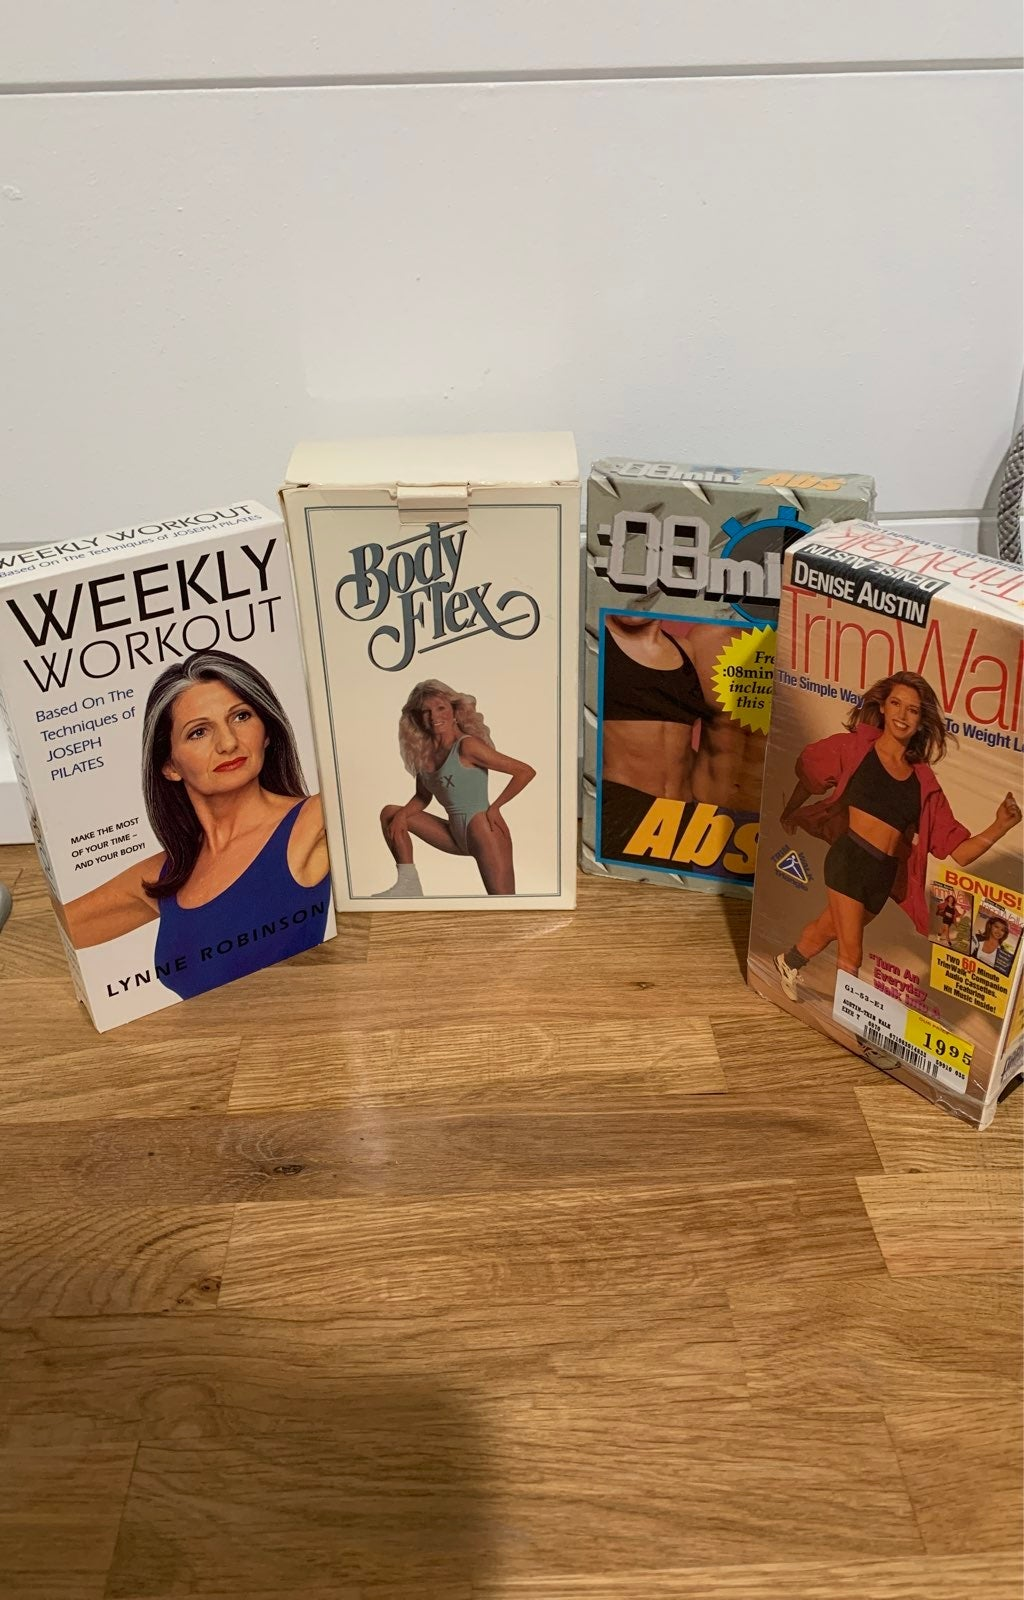 Workout VHS Tapes